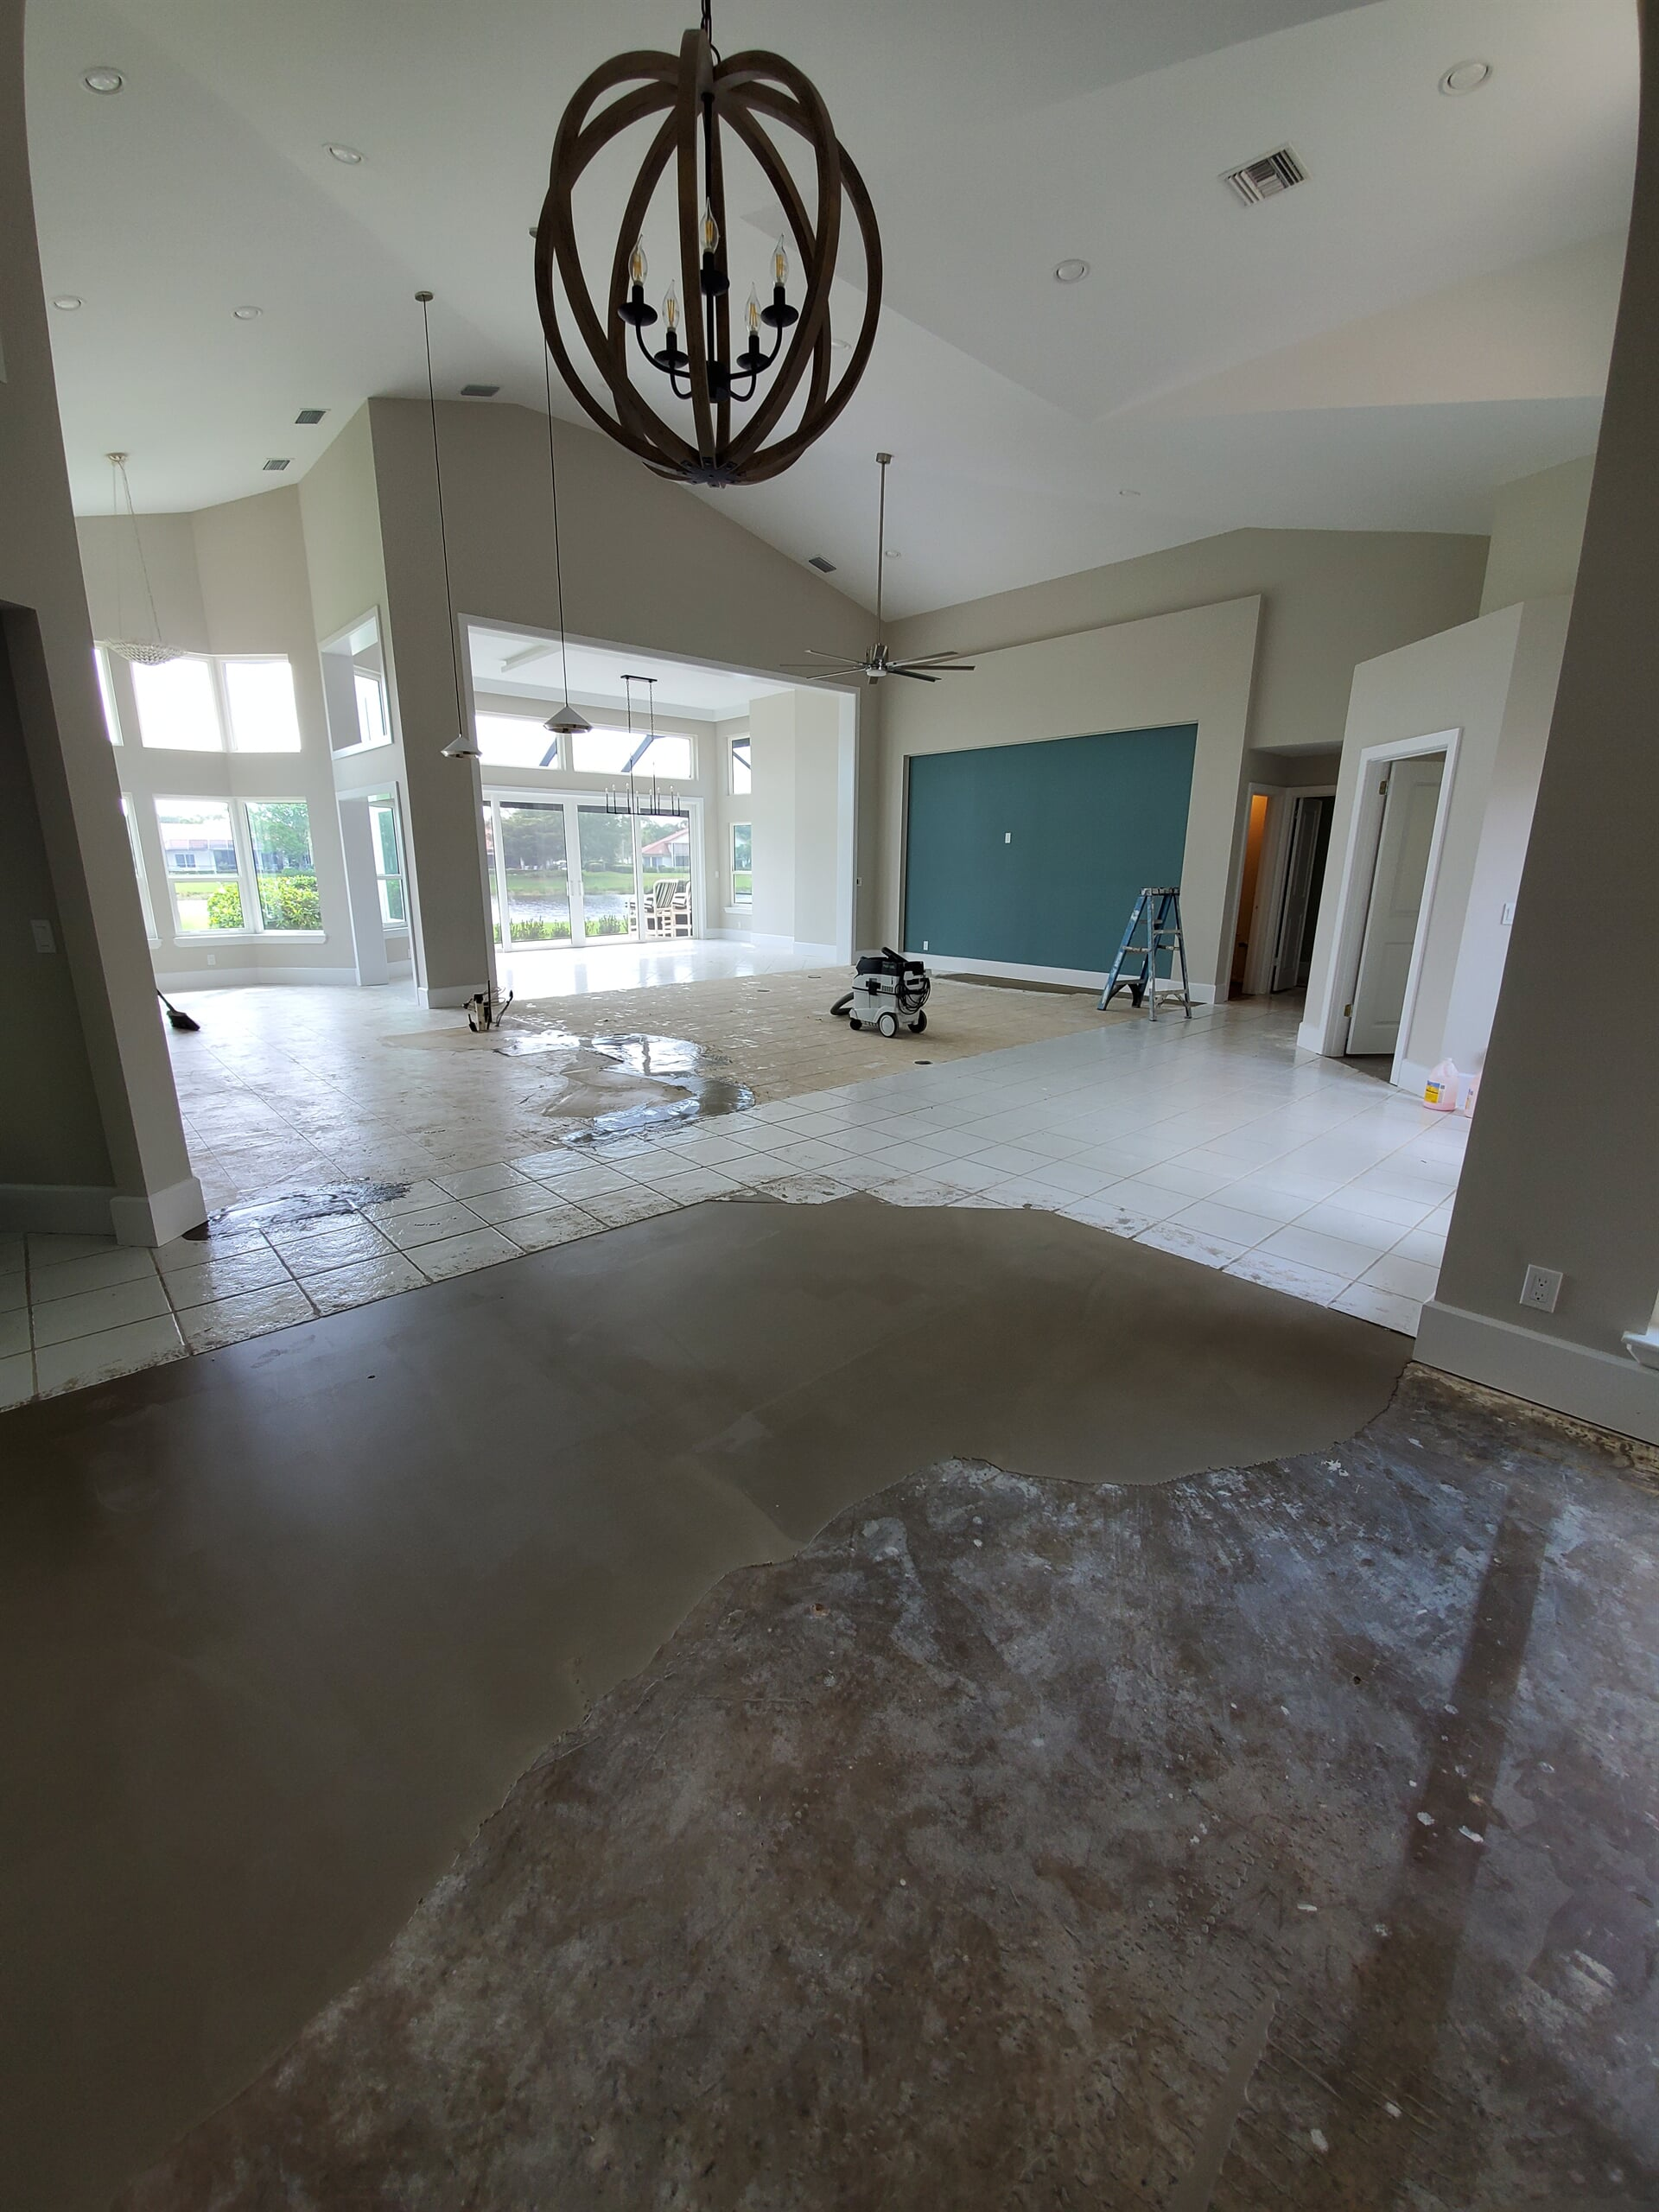 Mirage wood floors in Harbour ridge before